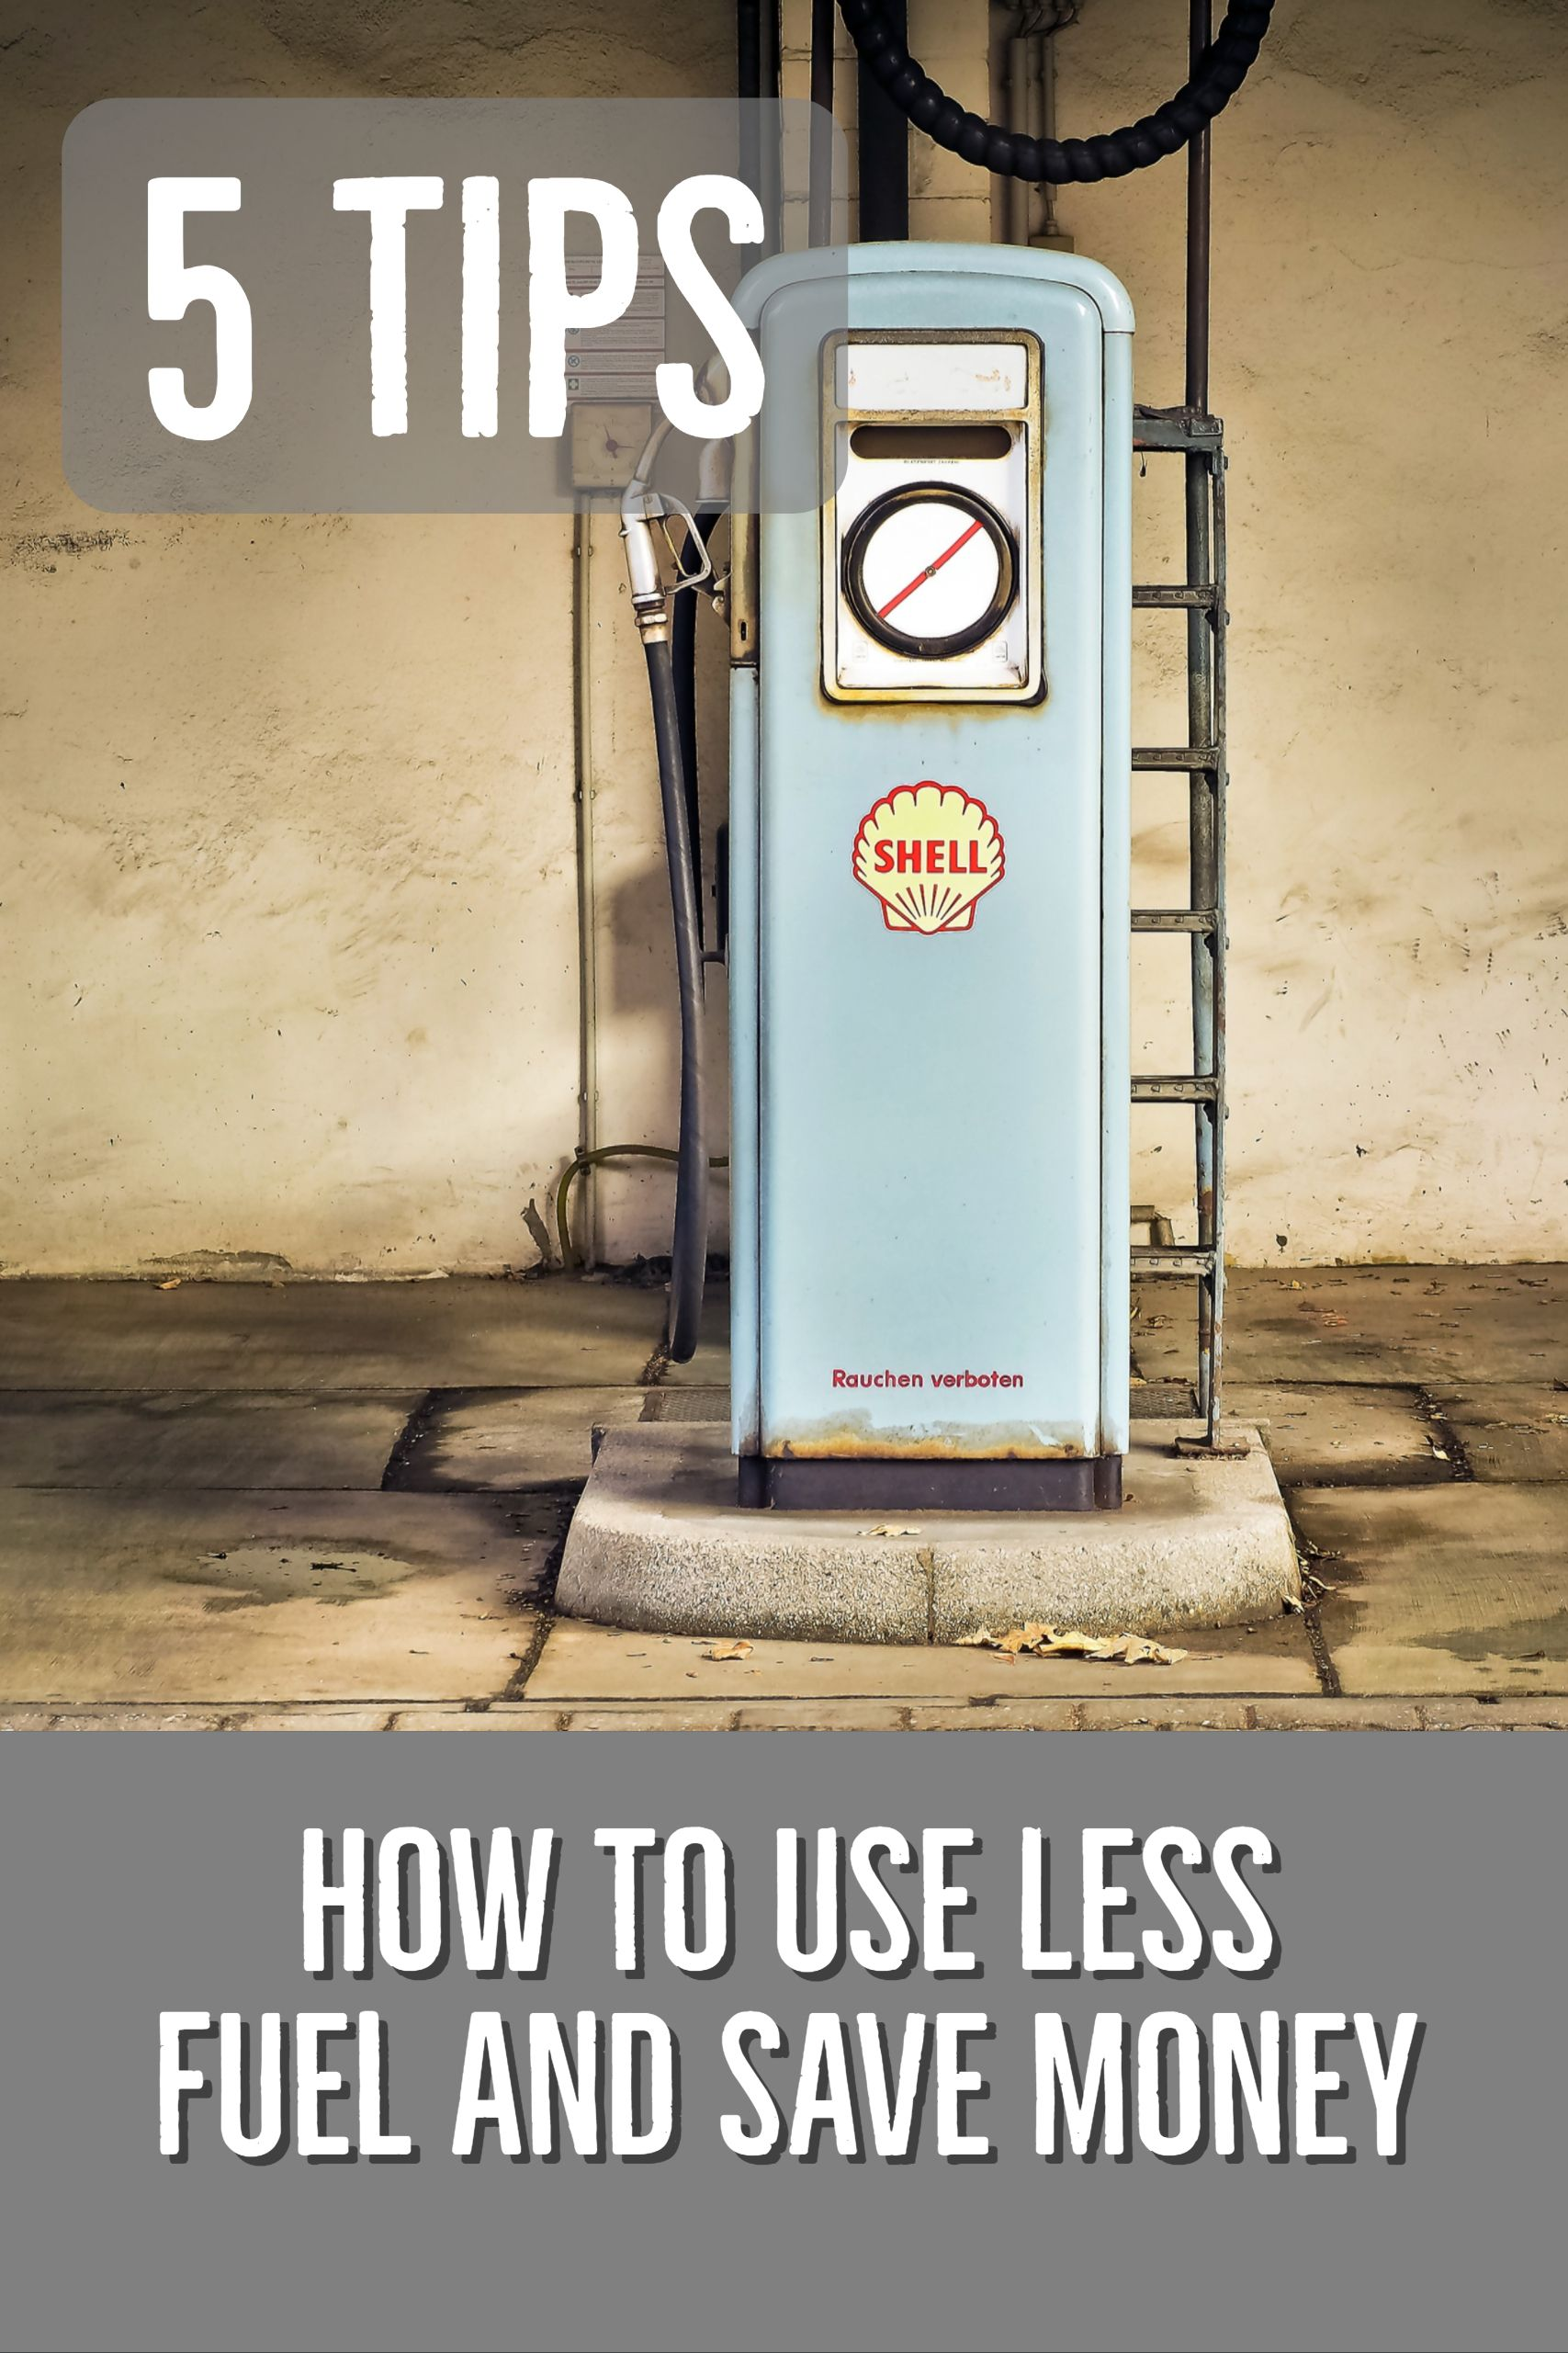 5 Tips to Use Less Fuel and Save Money. How to Improve Gas Mileage ...